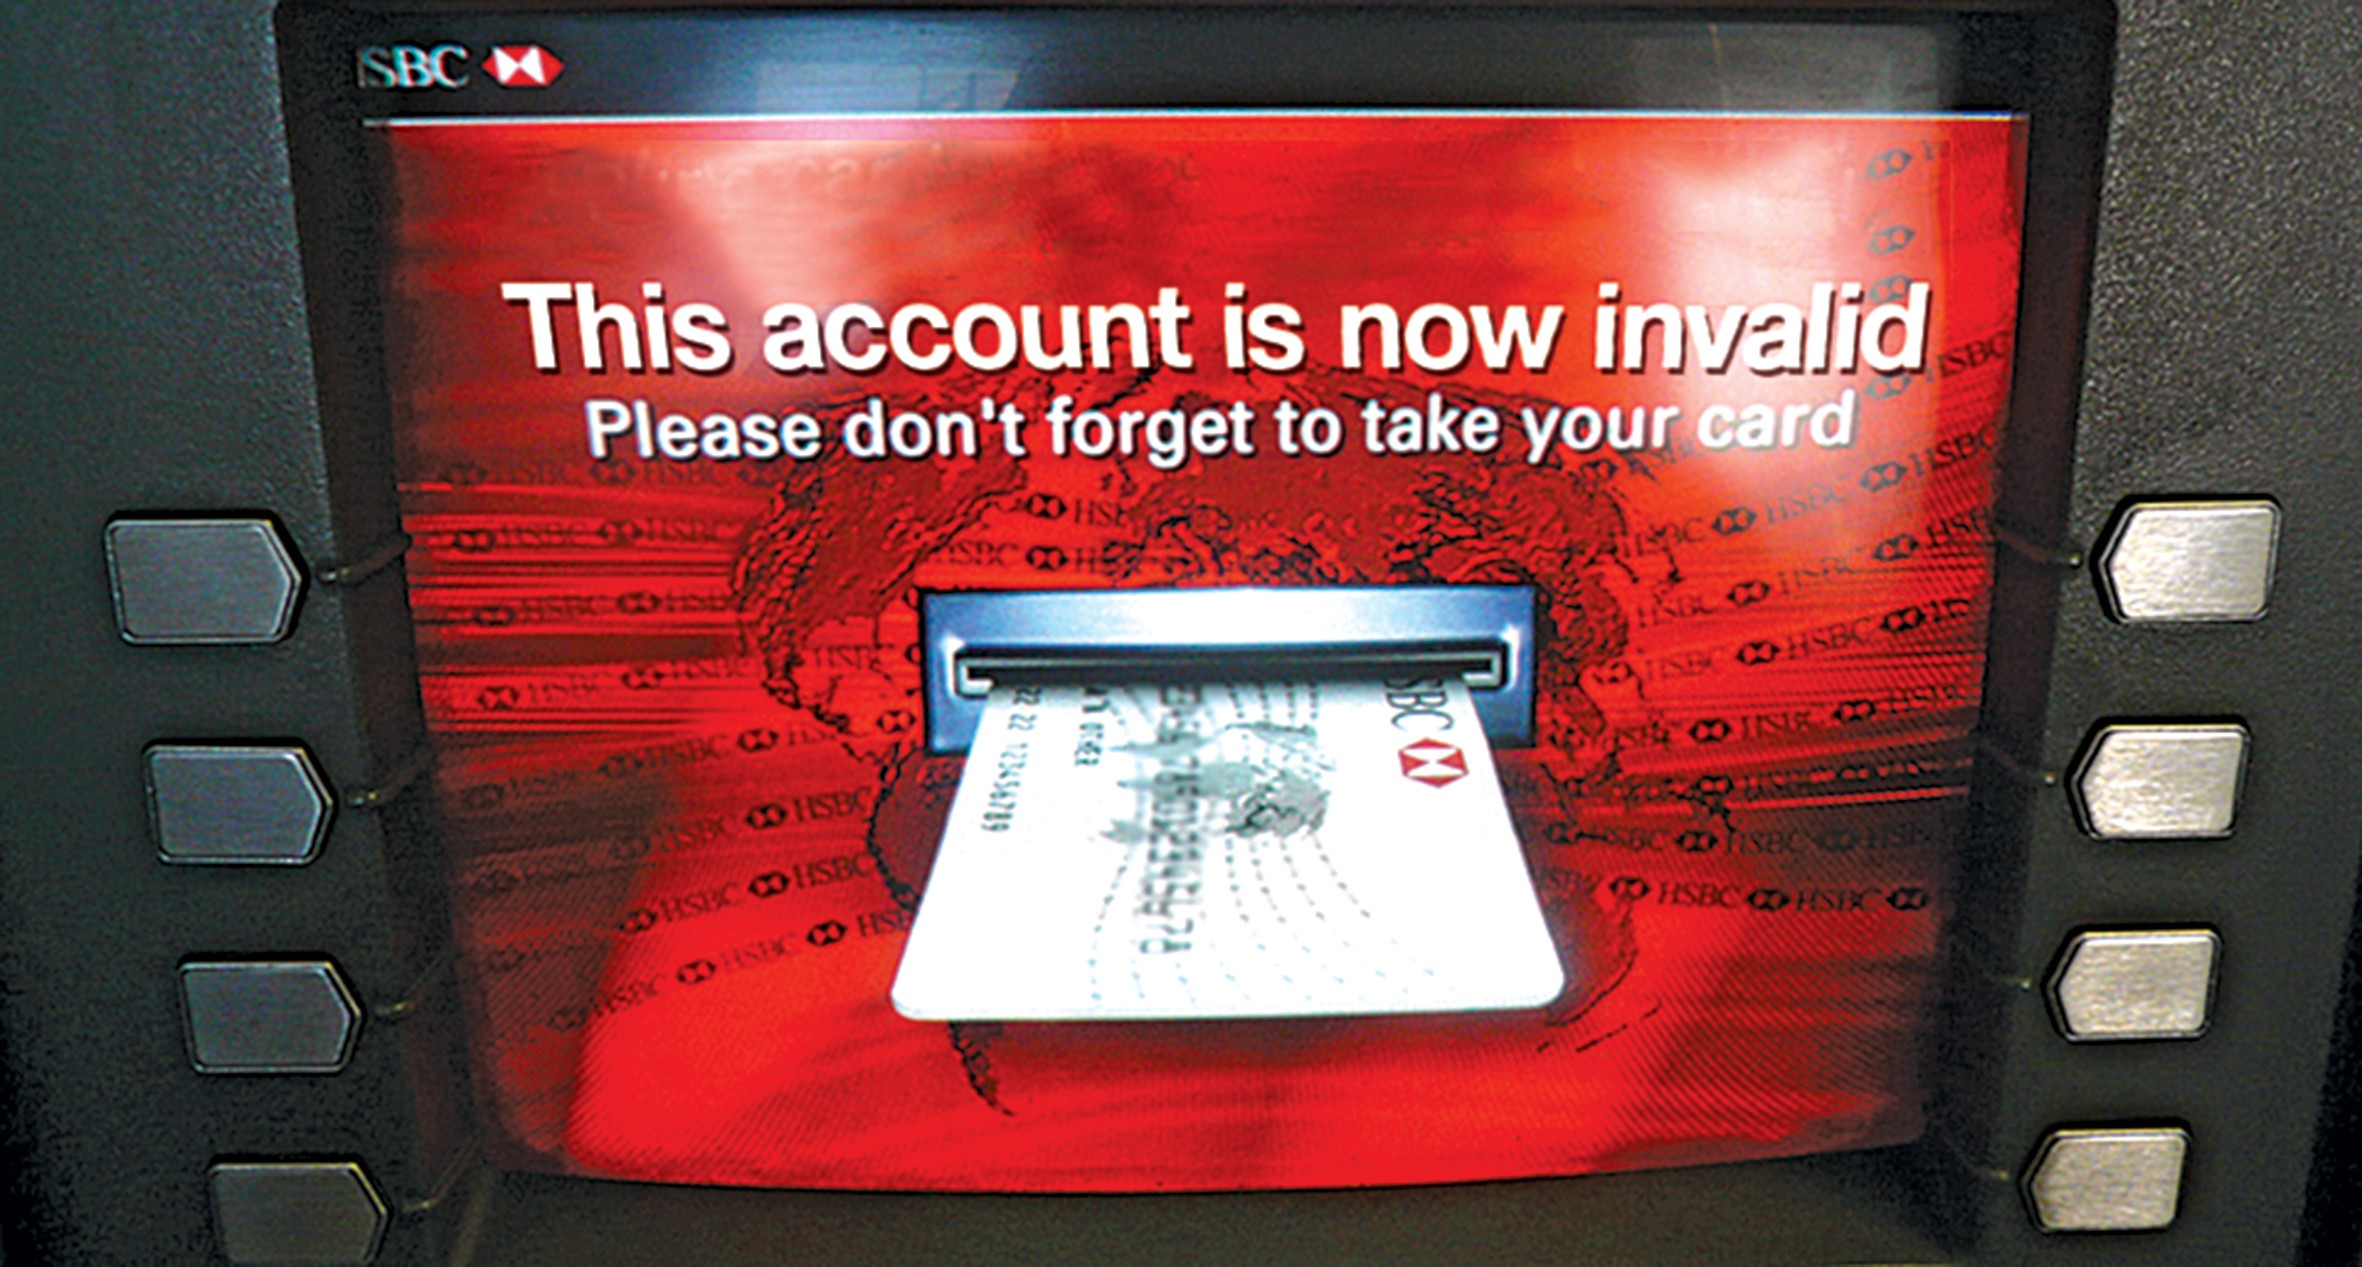 How bank's security questions left one user angry and